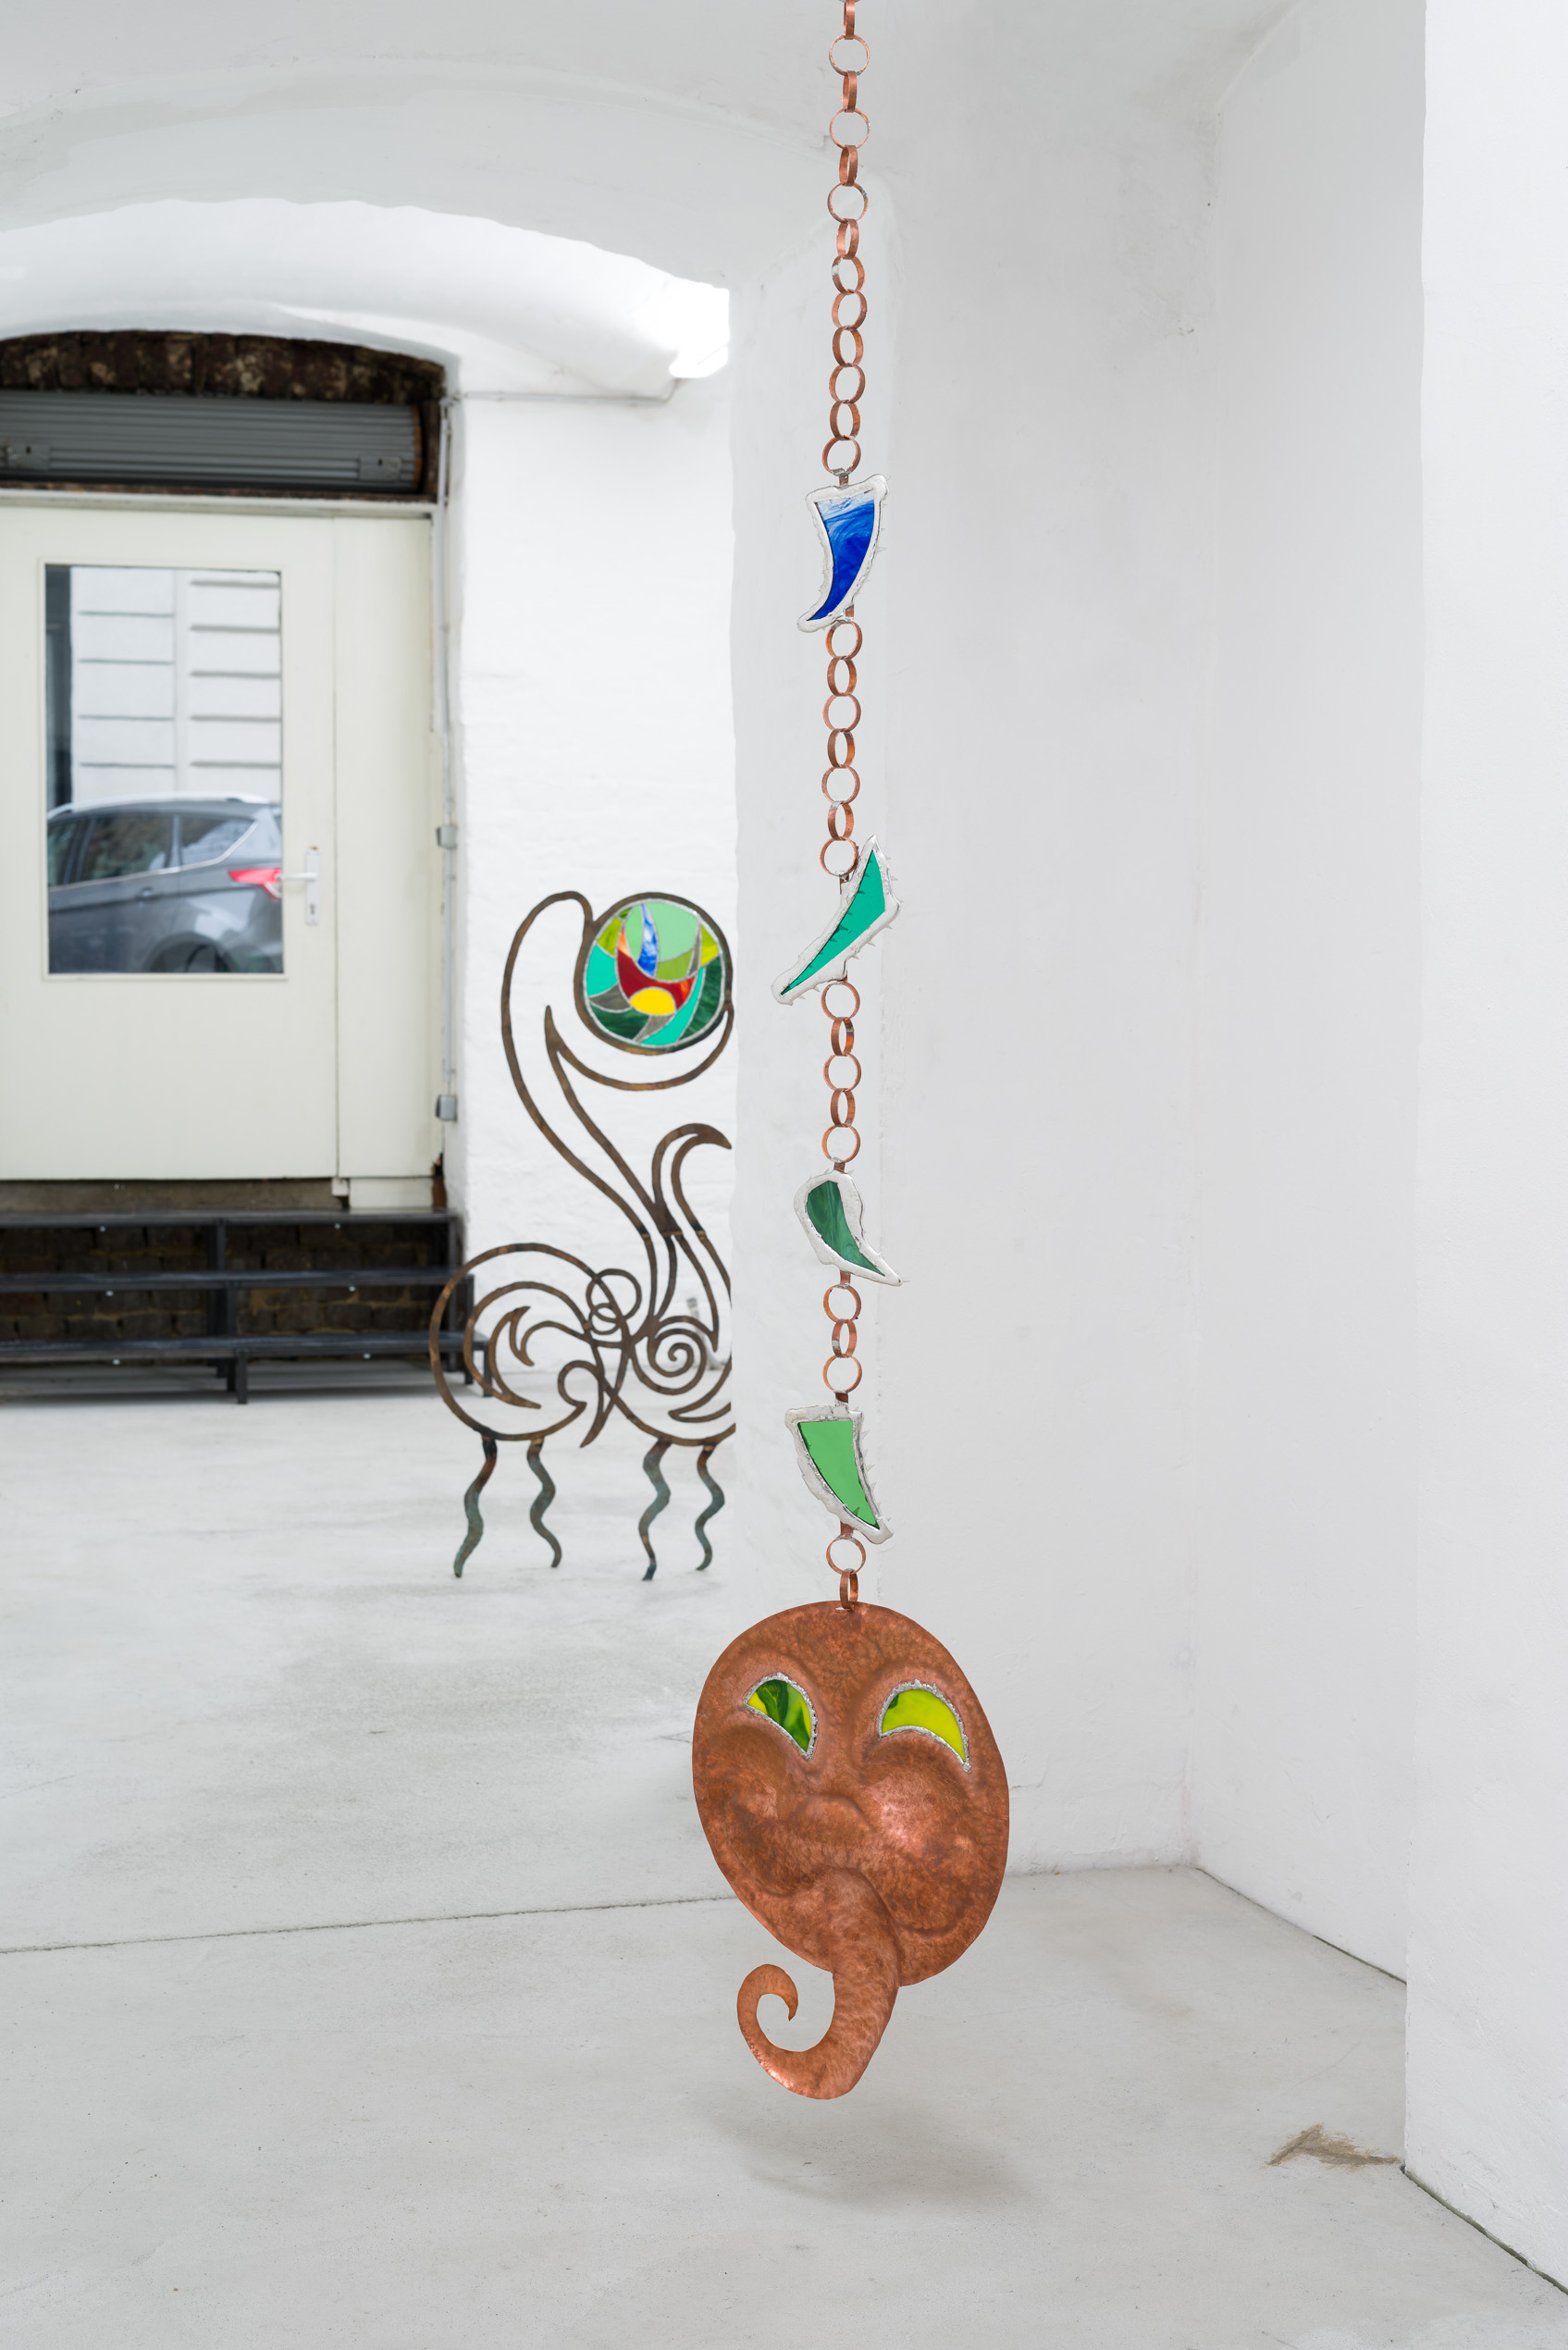 Emelie Sandström, Some of them have the face of dogs, 2018, Copper, glass, pewter